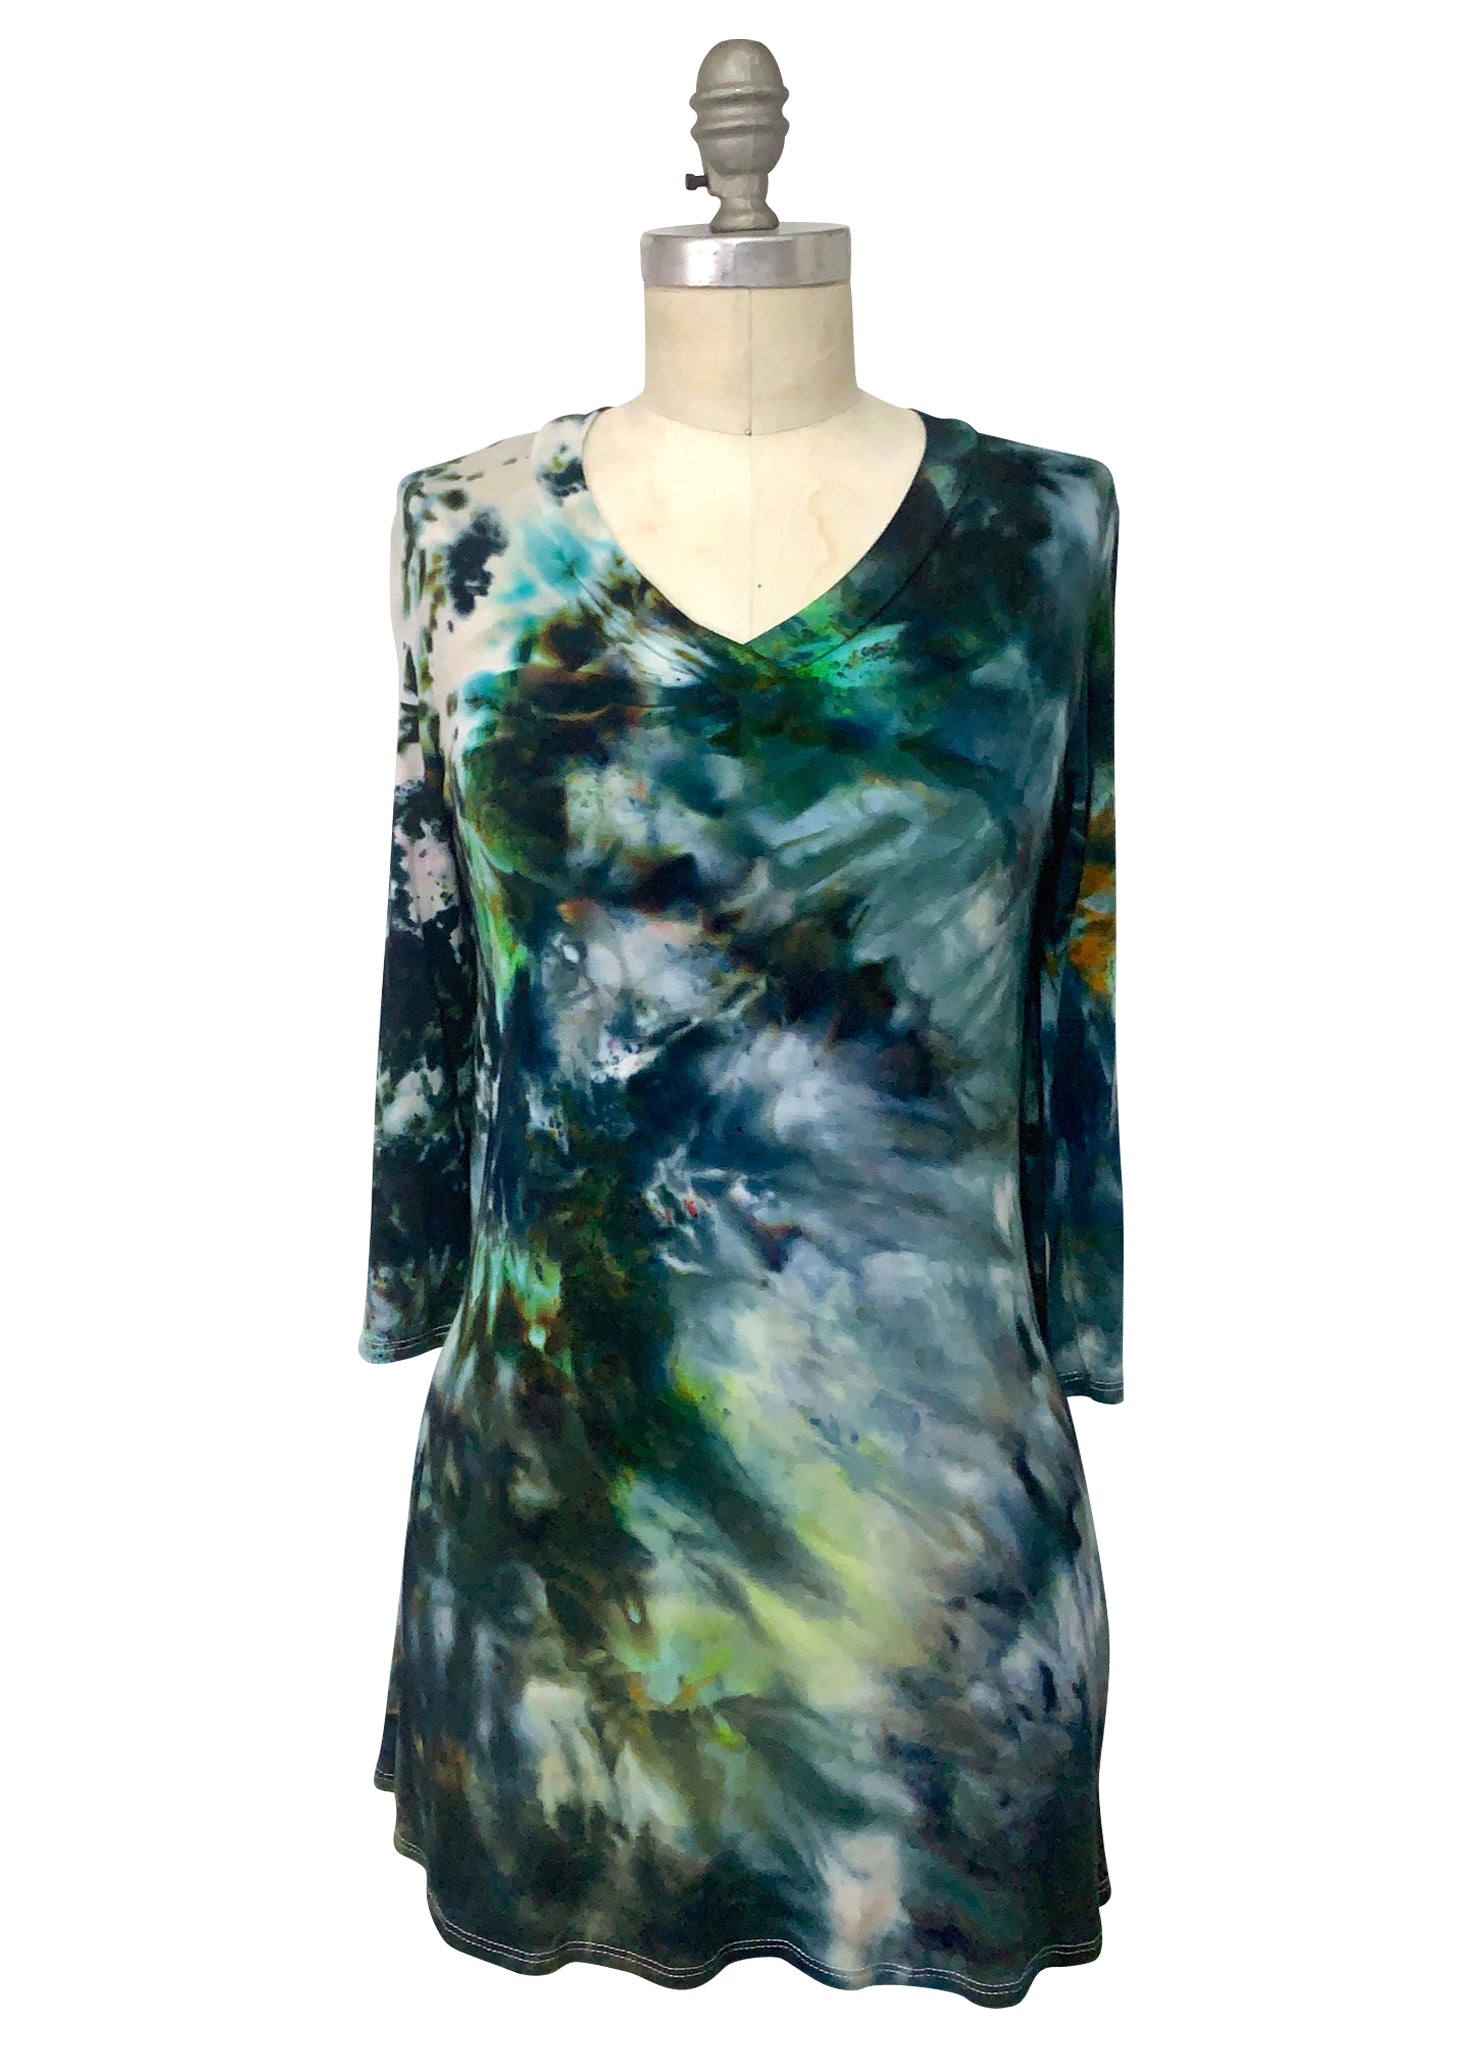 V Neck Tunic in Woodland Camo - Top - Dyetology